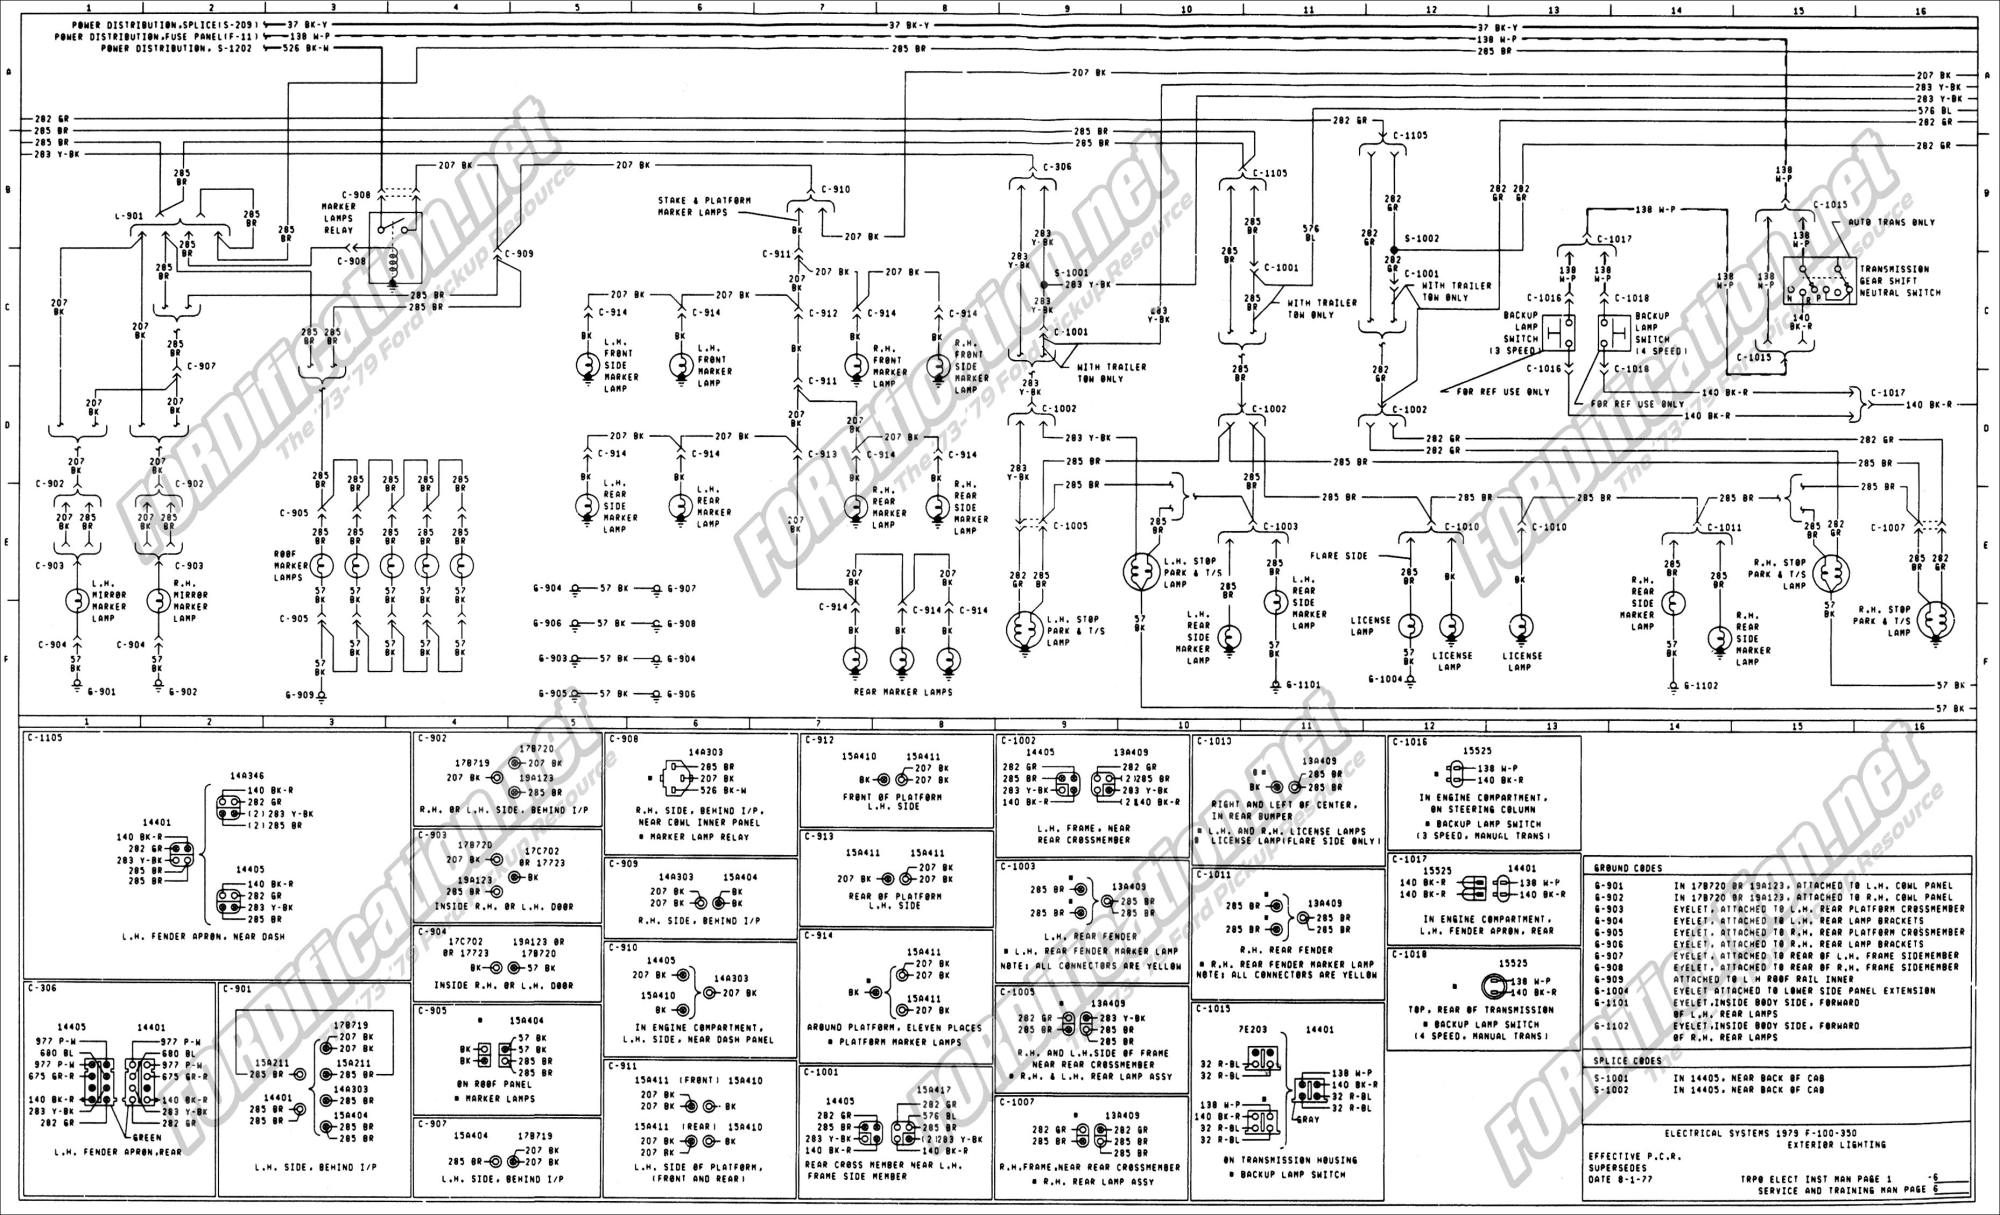 hight resolution of 77 ford f250 wiring diagram wiring schematic diagram rh theodocle fion com 2000 f150 trailer wiring